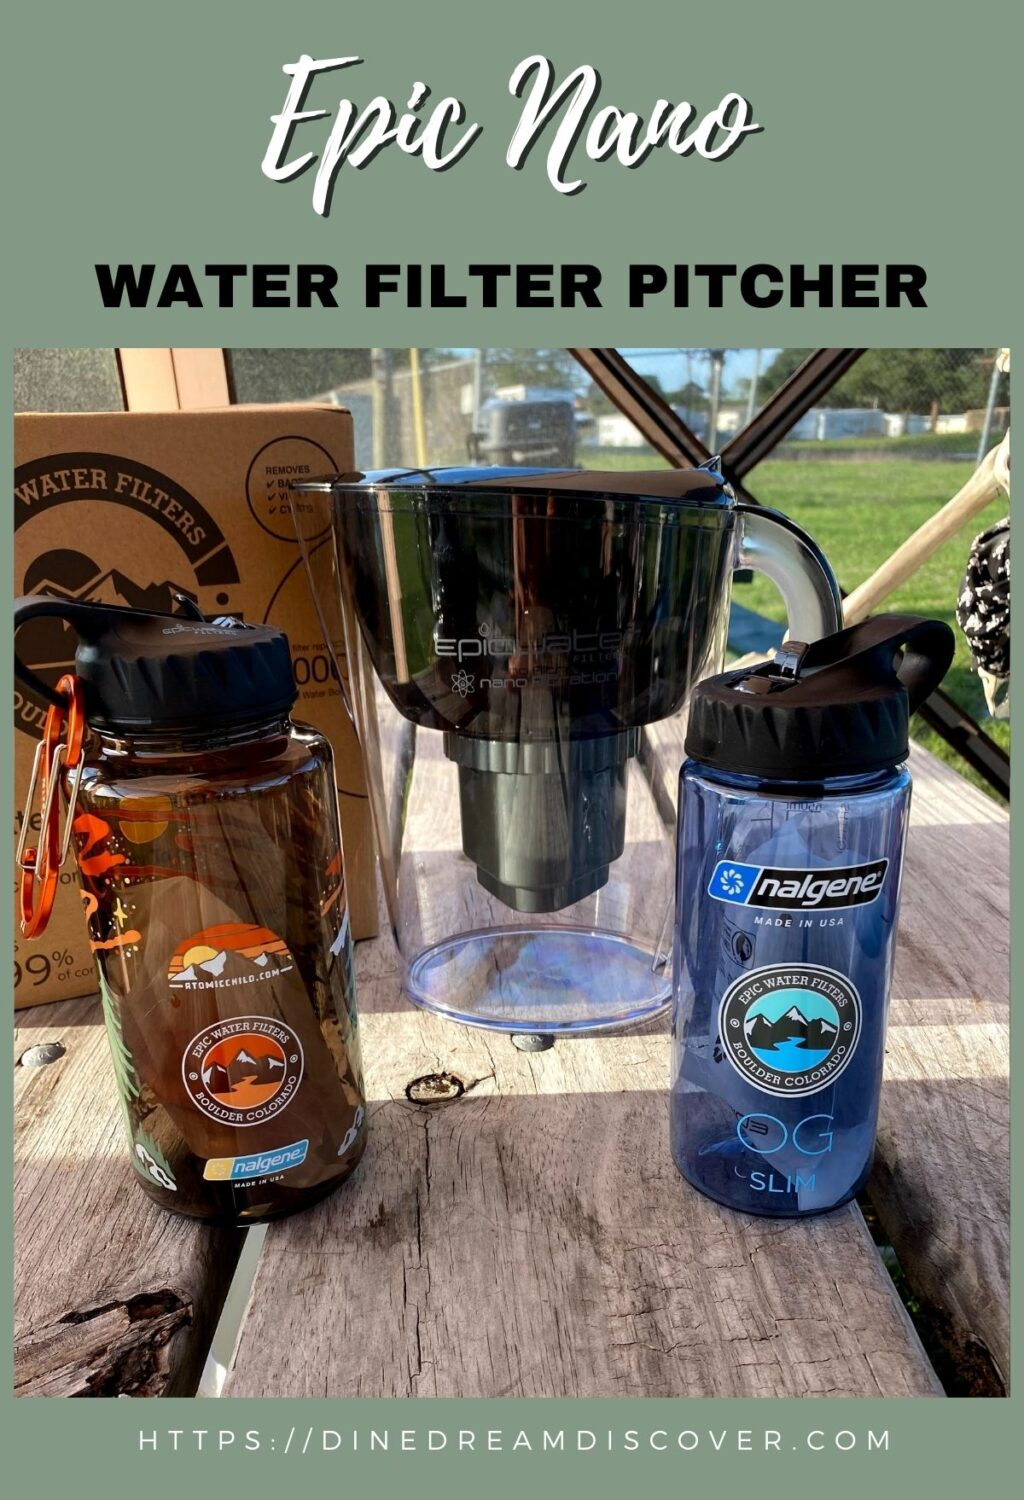 Epic Nano Water Filter Pitcher